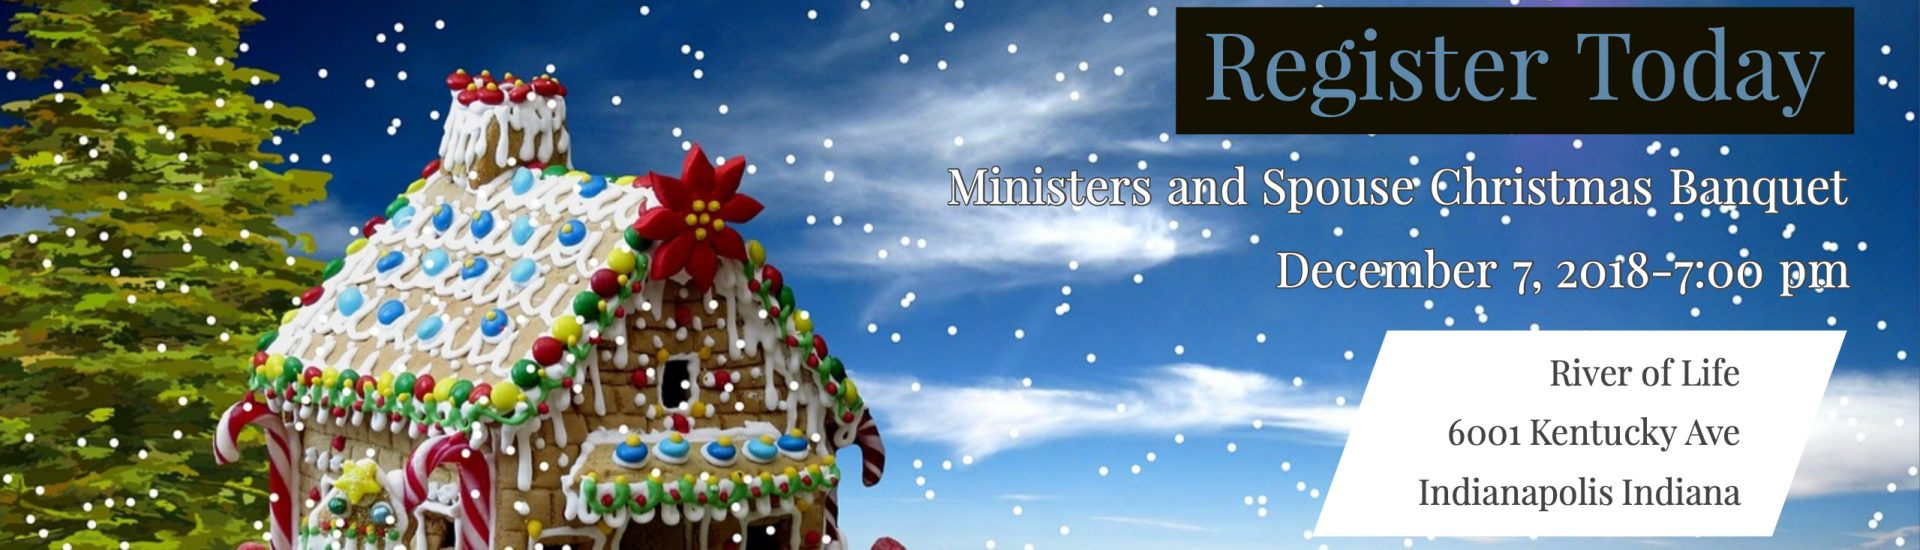 Ministers and Spouse Christmas Banquet